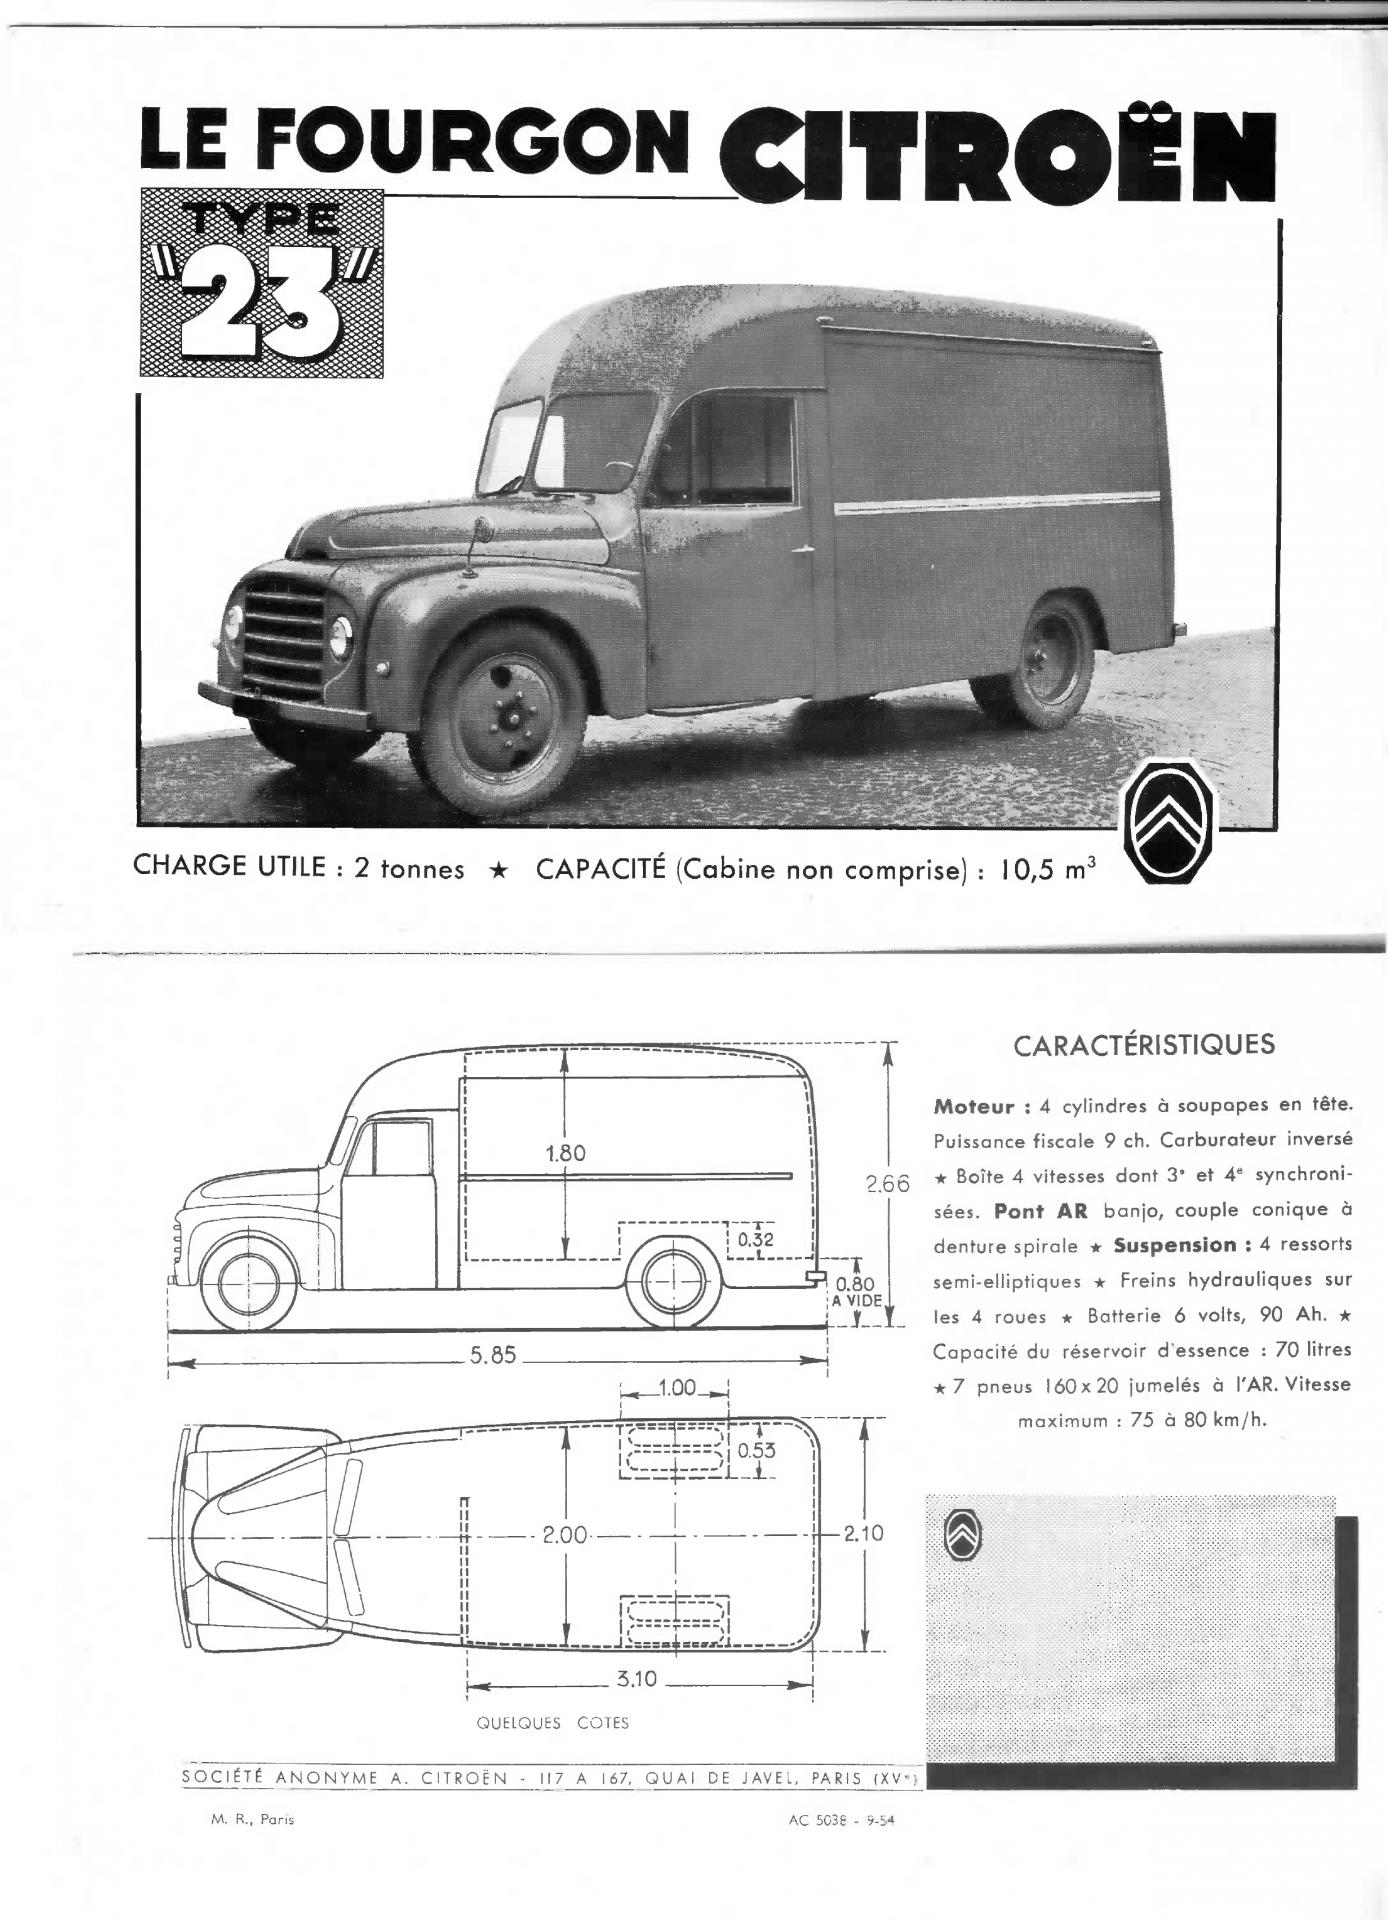 1954 Citroën Type 23 fourgon document commercial